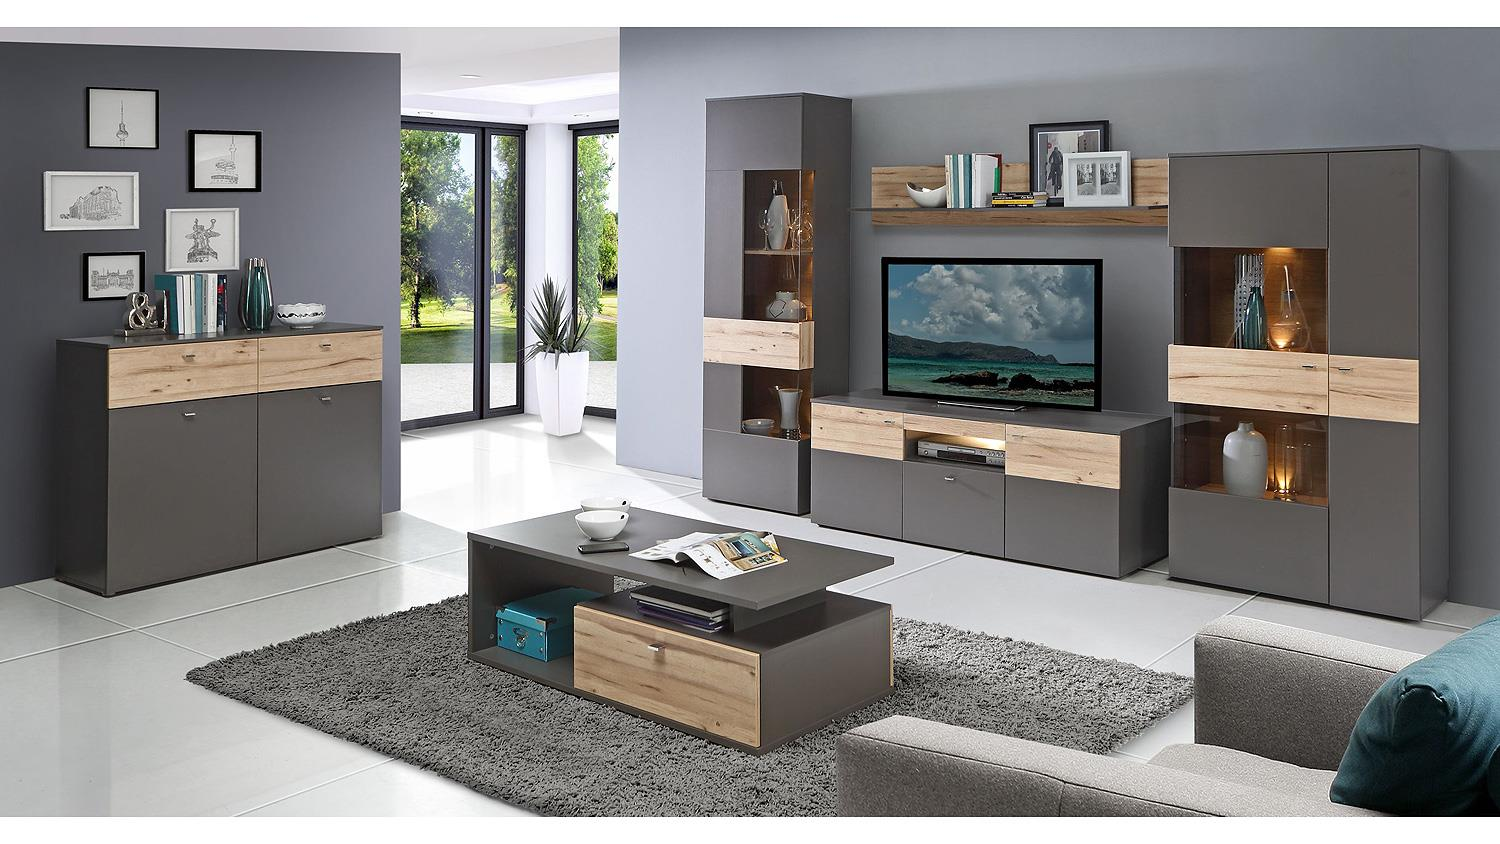 wohnwand como anbauwand in uni wolfram grau und planked eiche mit led. Black Bedroom Furniture Sets. Home Design Ideas